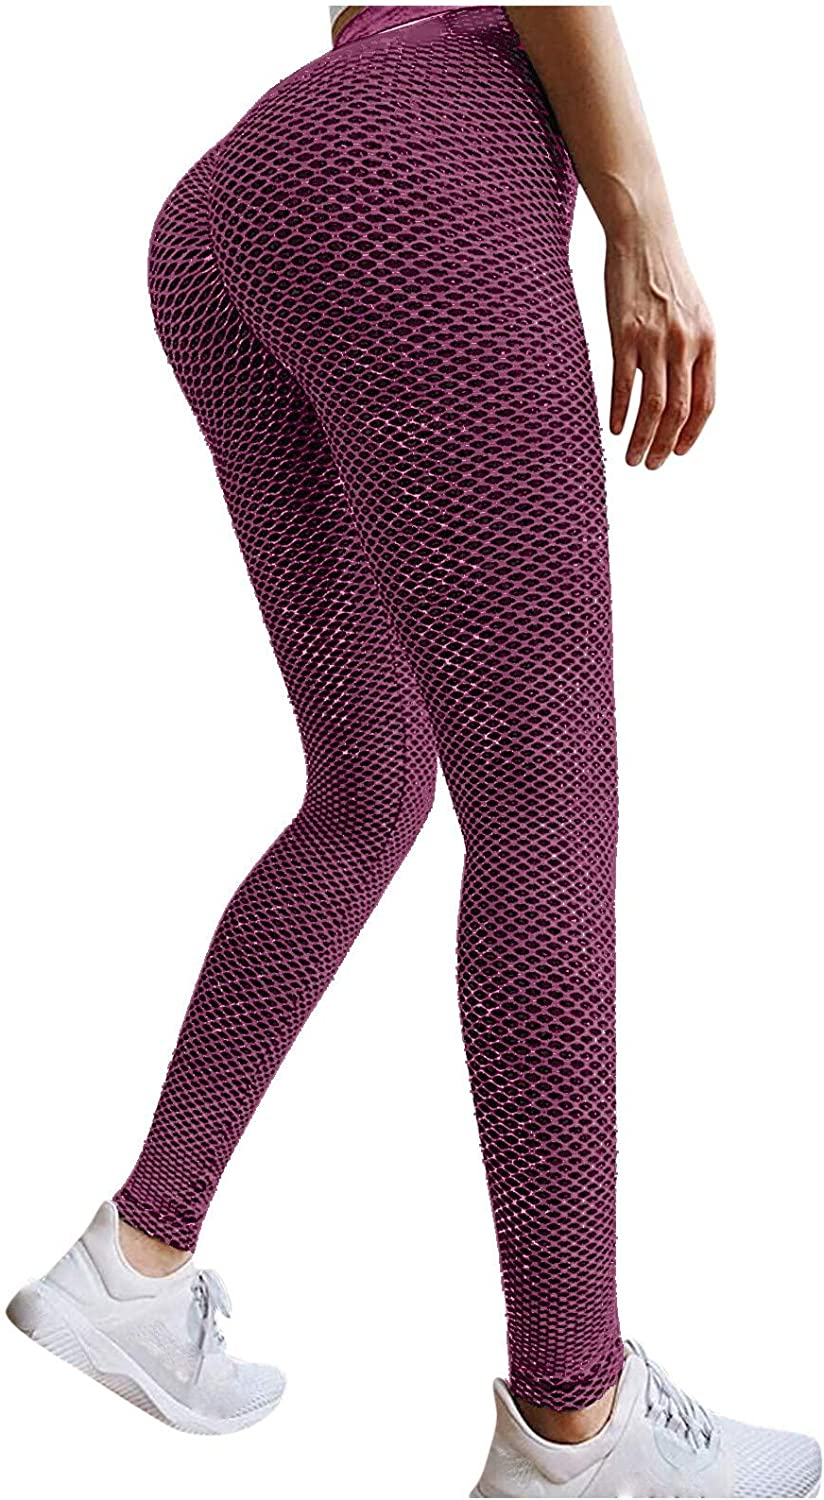 Hotkey Leggings for Women, High Waisted Tummy Control Yoga Pants Casual Running Active Pants Gym Sports Sweatpants